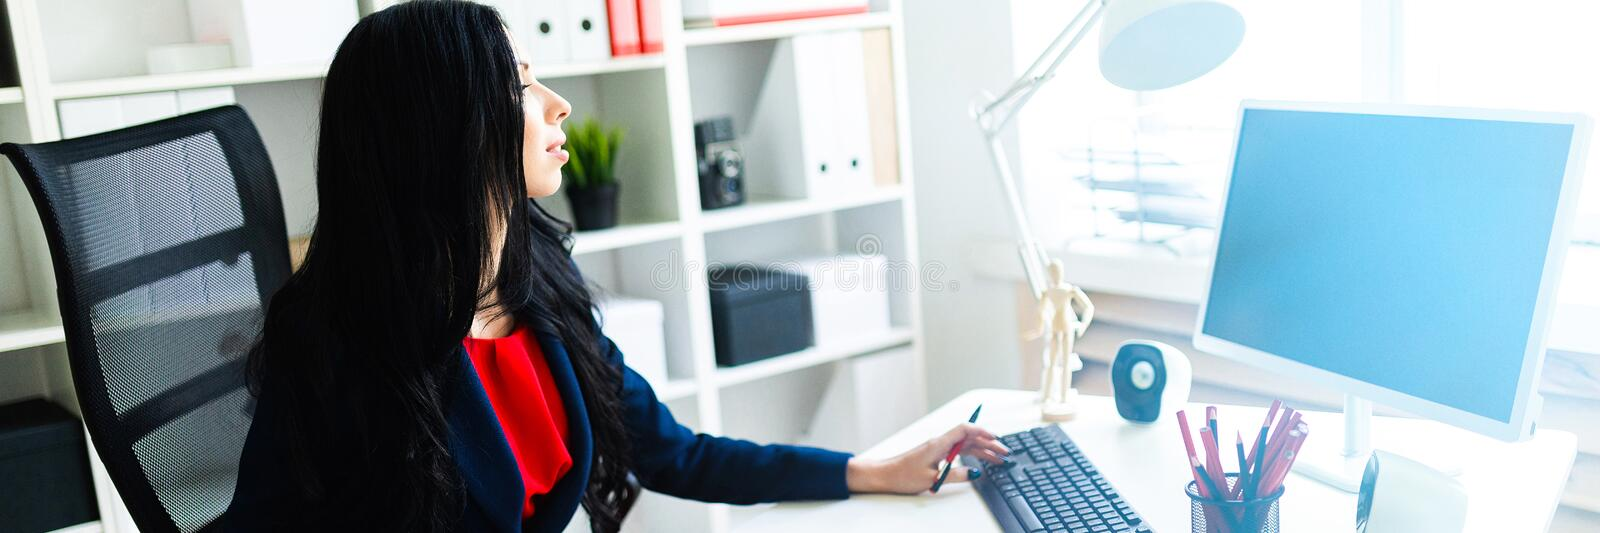 Beautiful young girl working with computer and documents in the office at the table. royalty free stock image